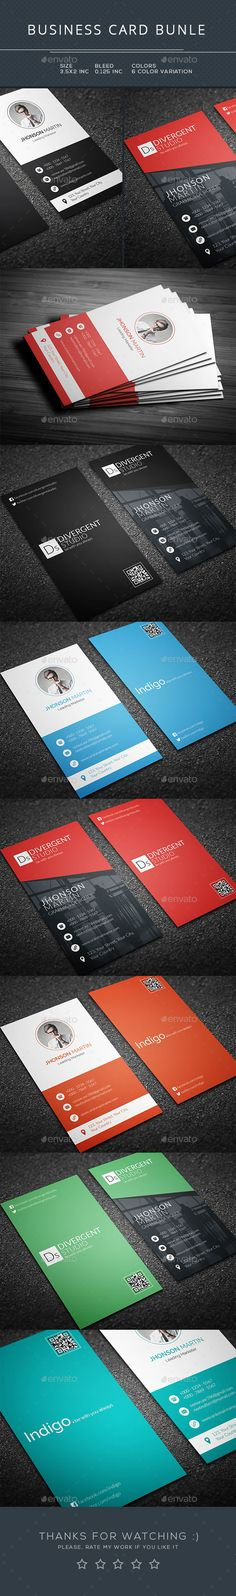 Creative business cards bundle template design download http creative business cards bundle template design download http graphicriveritemcreative business cards bundle12071705refksioks pinterest reheart Image collections